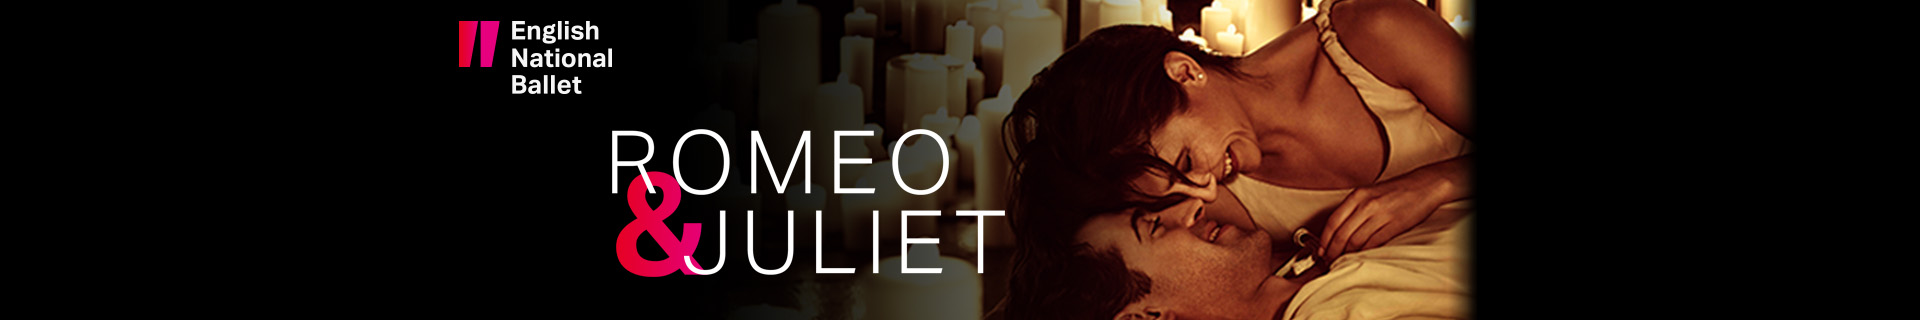 English National Ballet: Romeo and Juliet Header Image